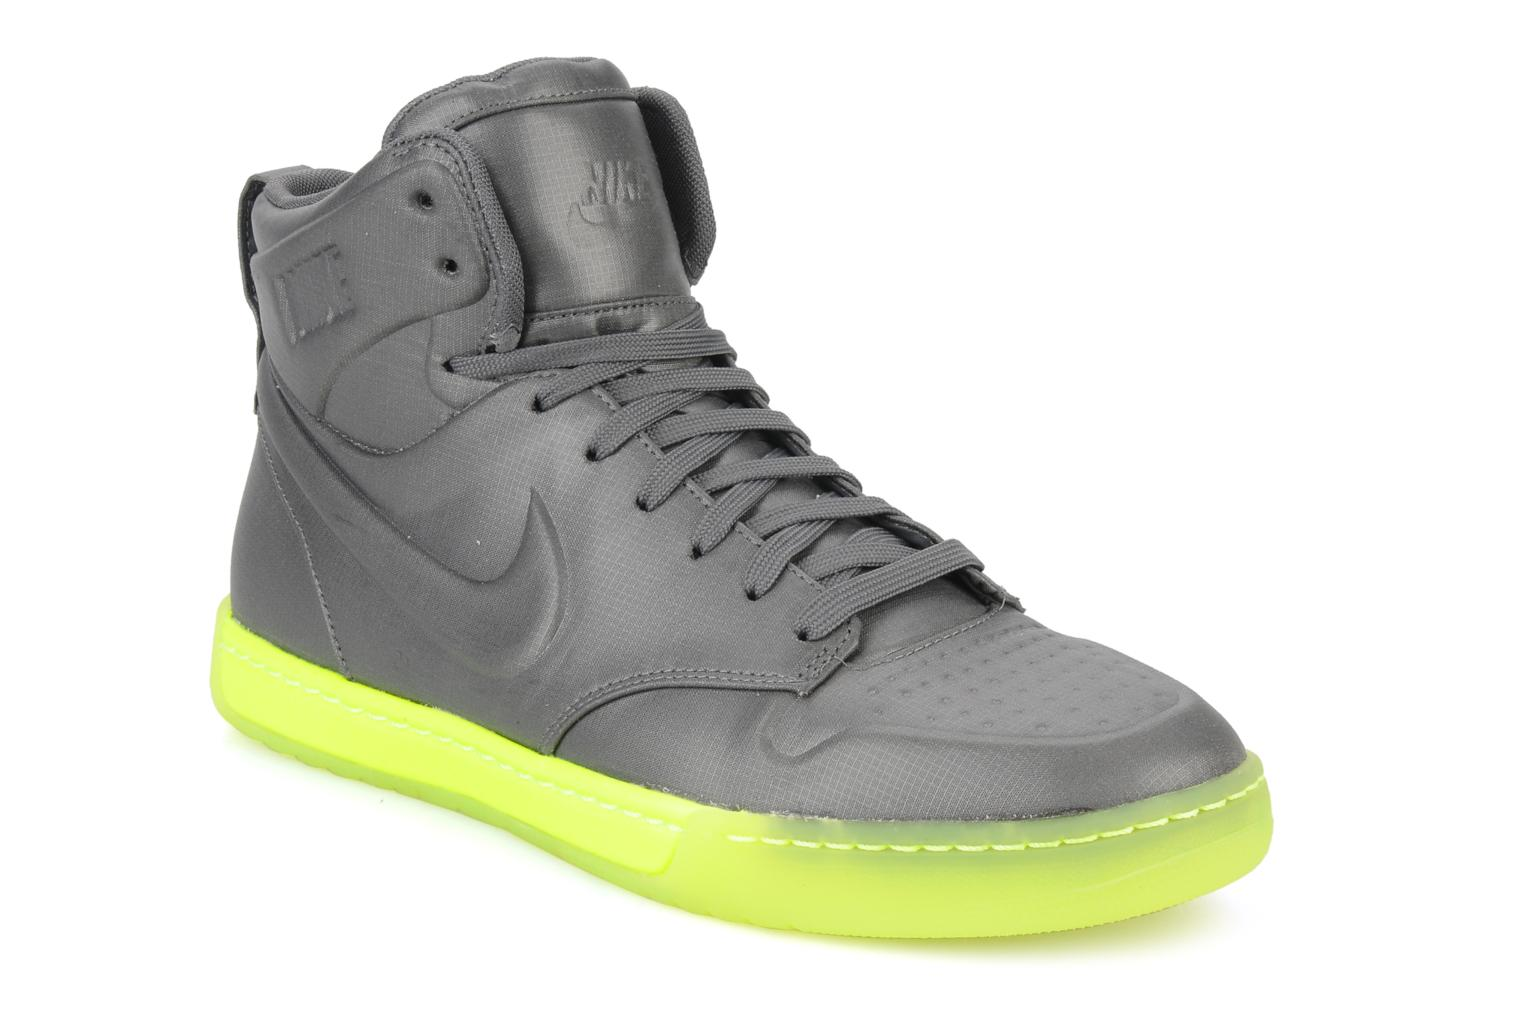 Wmns nike air royalty mid vt Dark greydark grey-volt